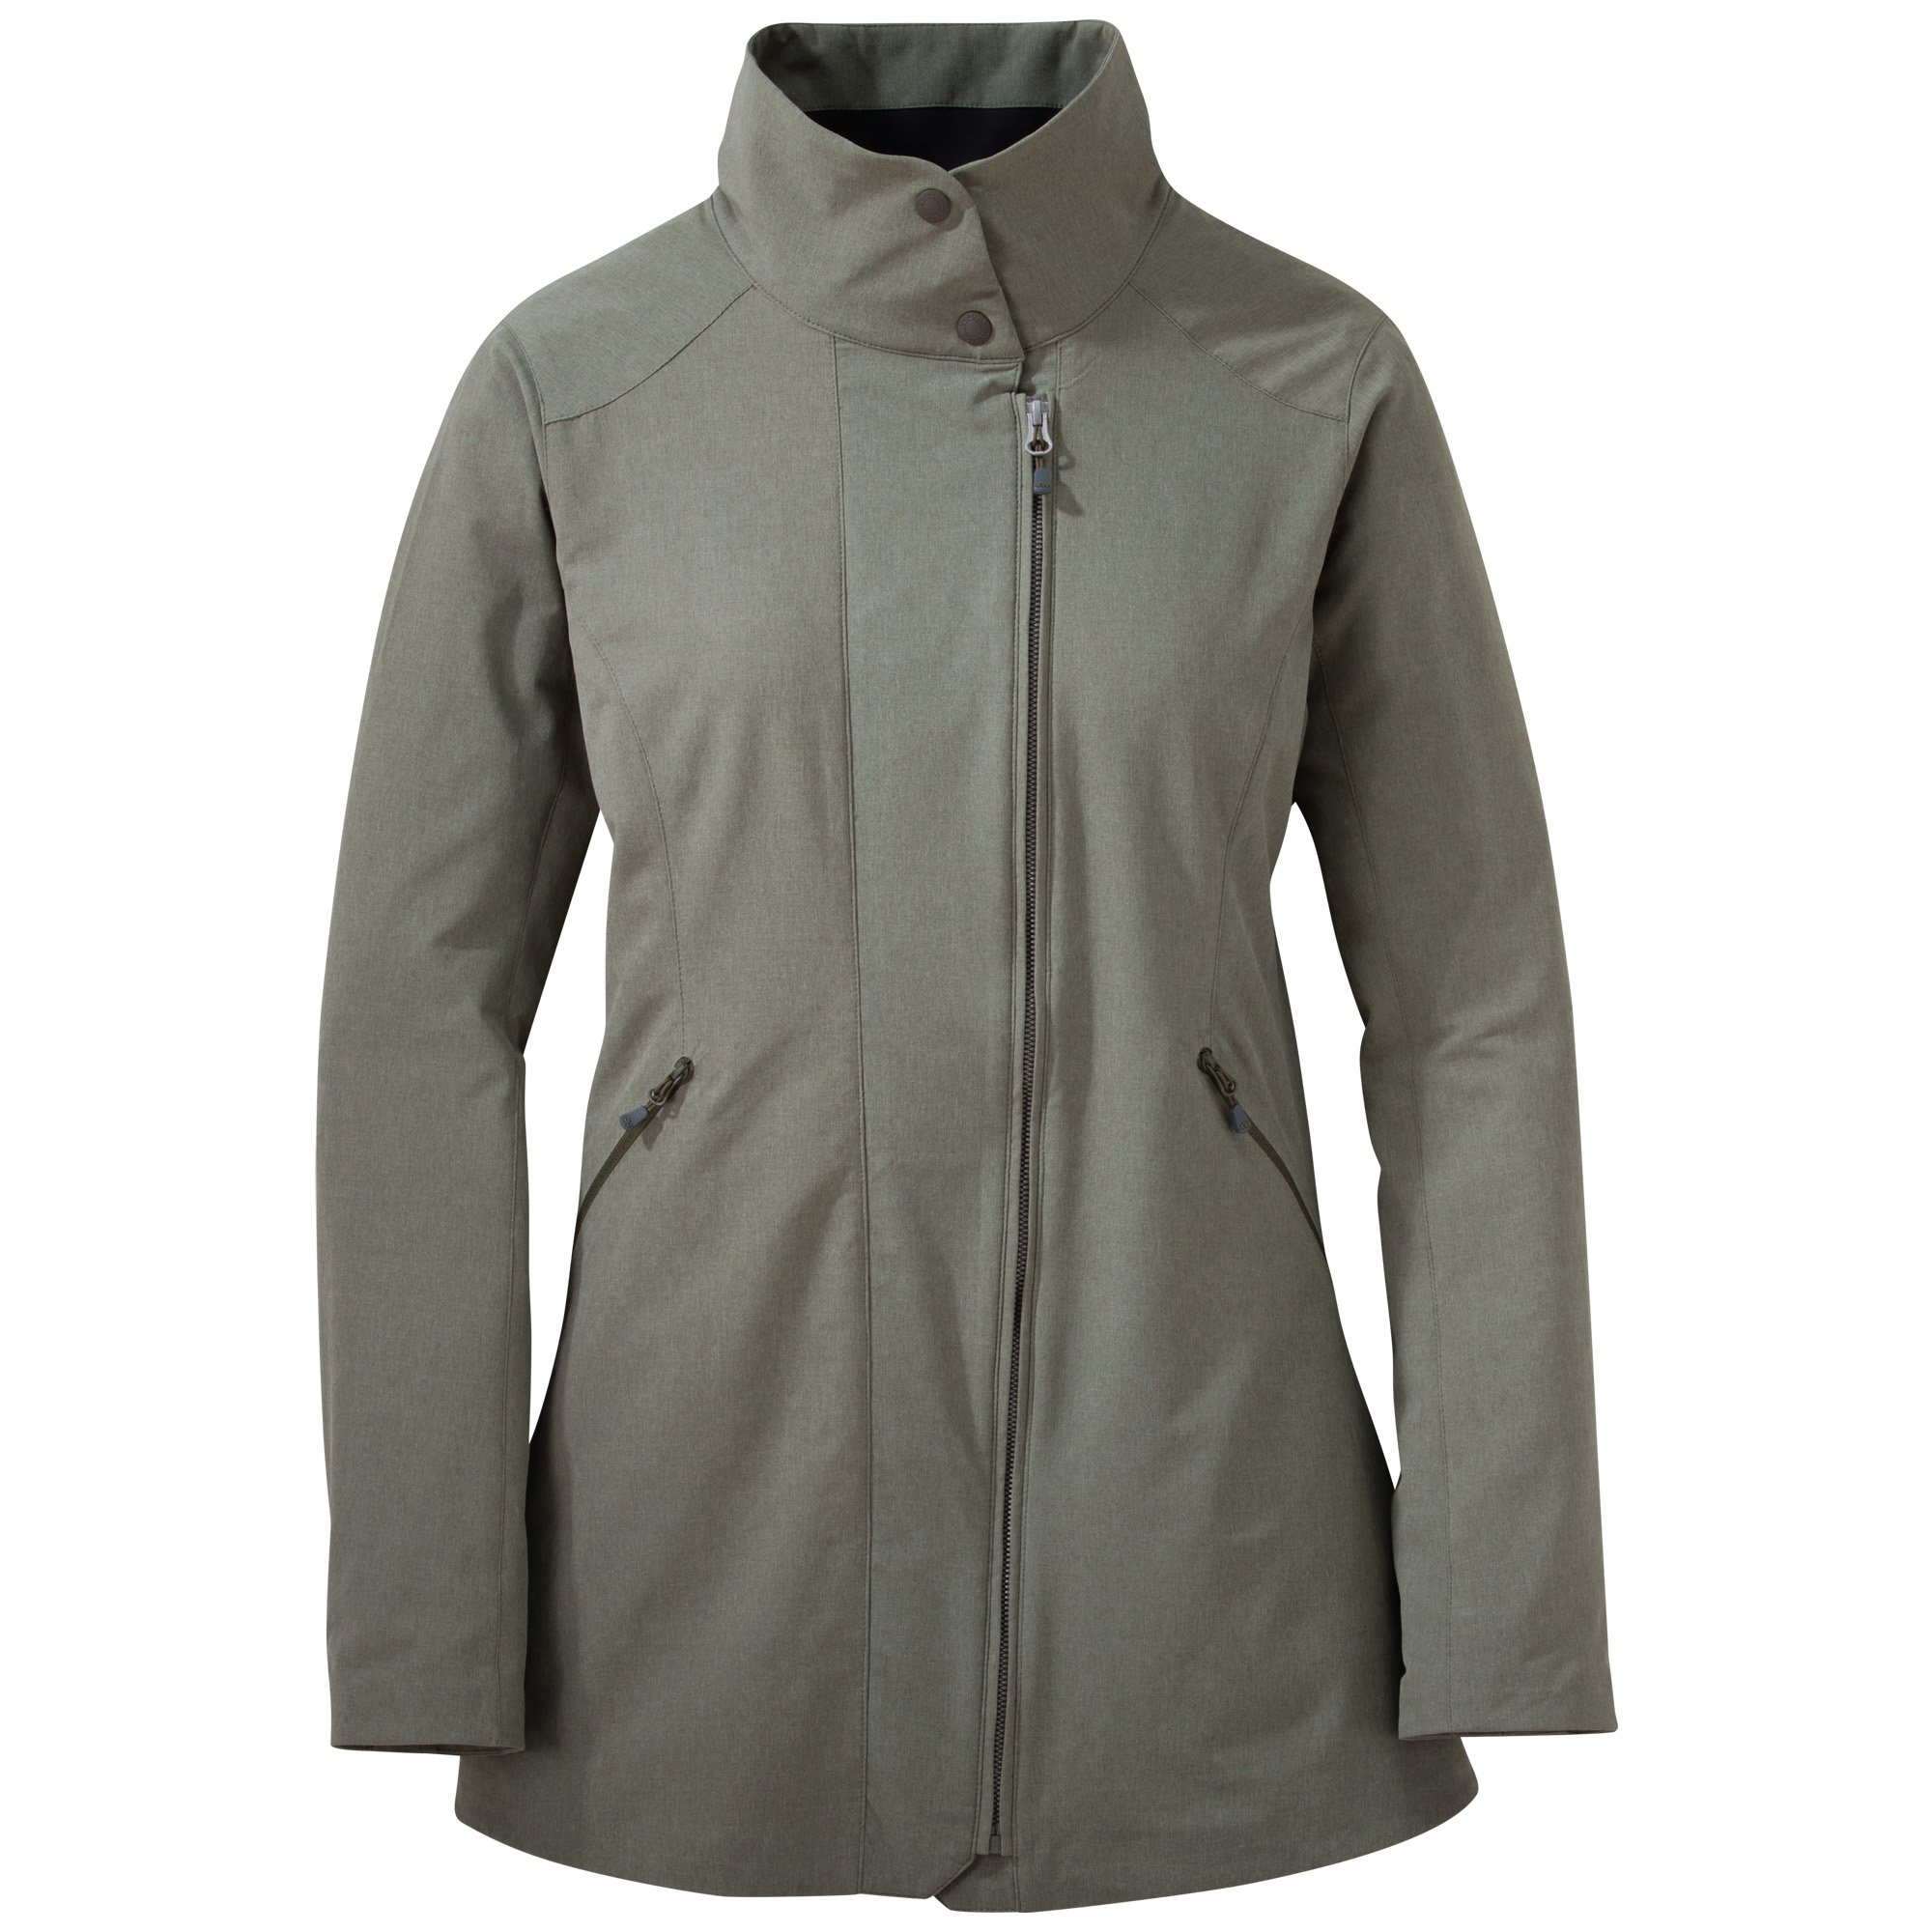 Outdoor Research Women's prologue trench Jacket, Fatigue Heather, Small